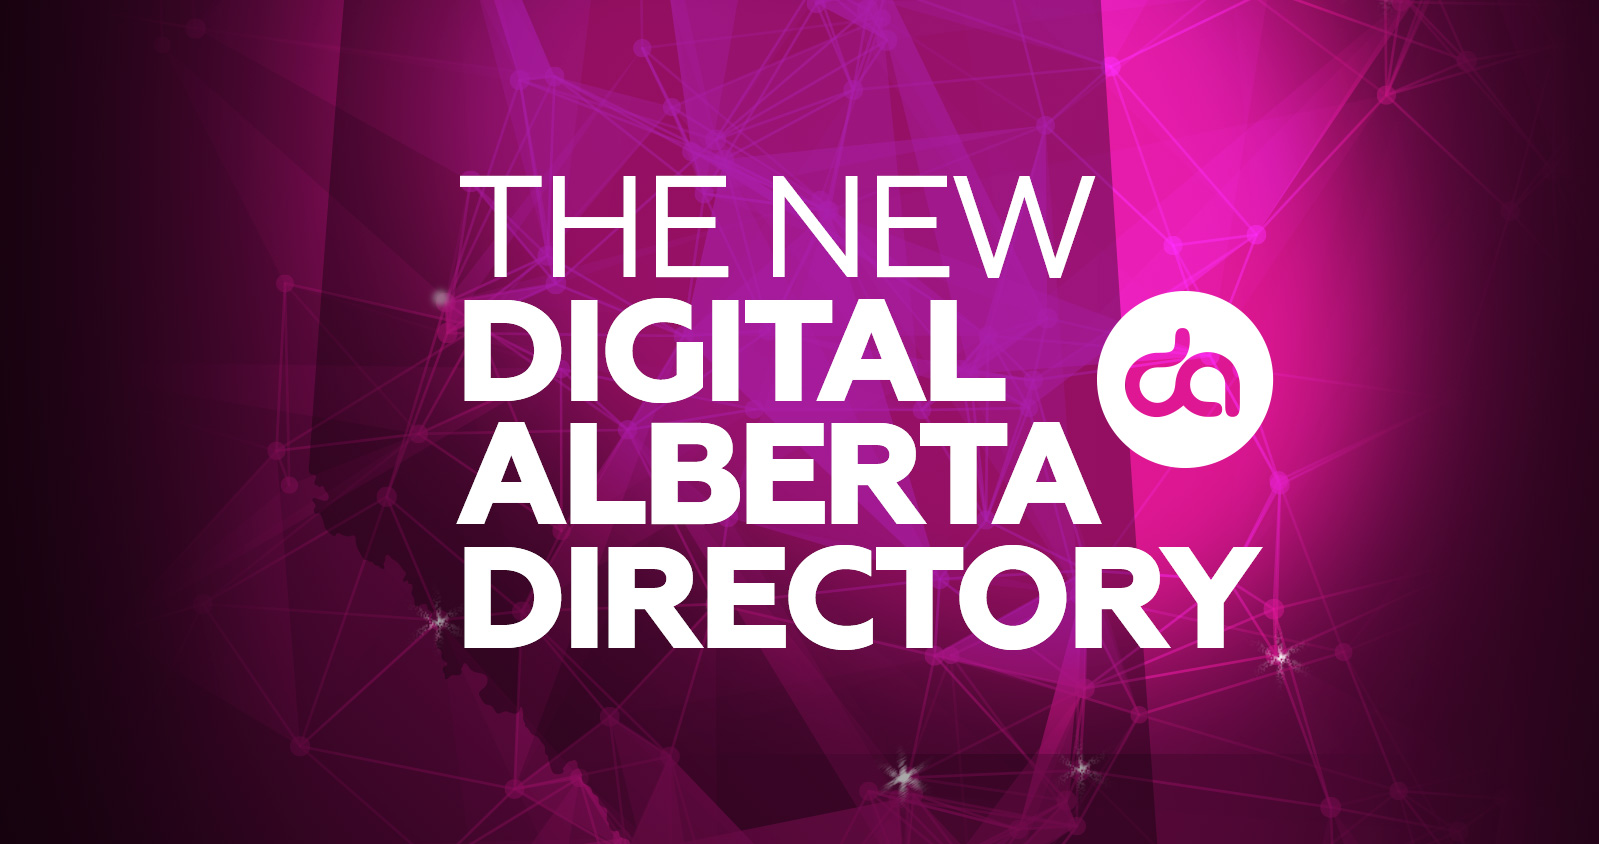 The Digital Alberta Directory